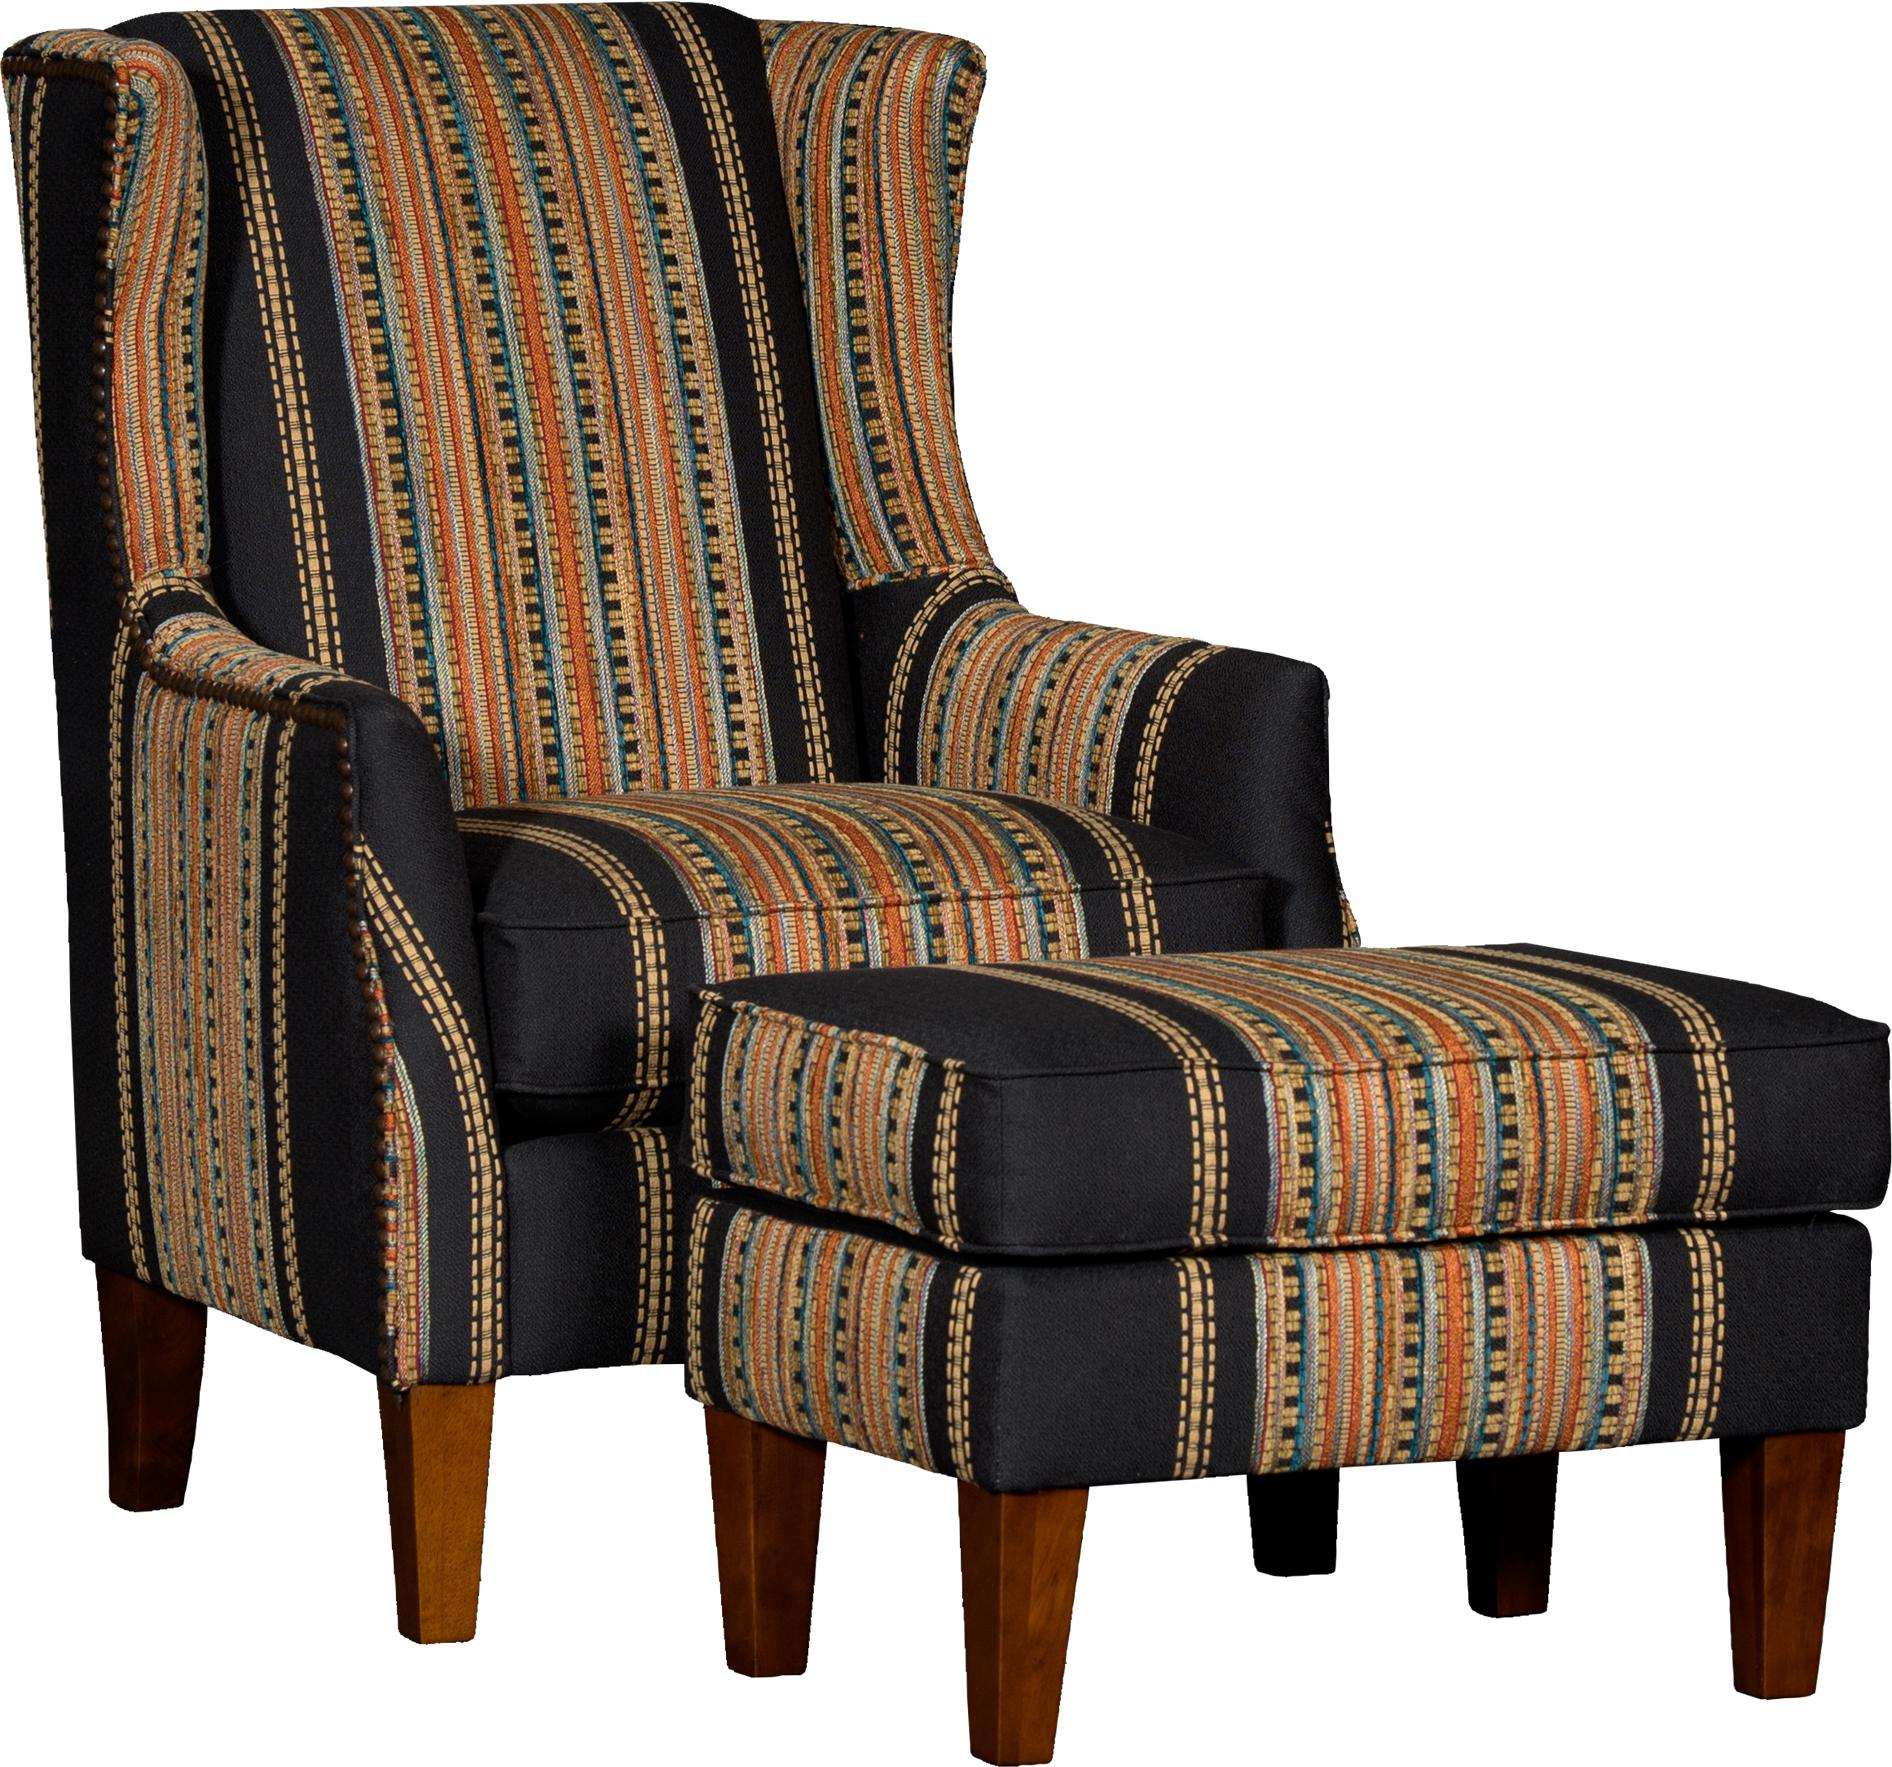 8840 Chair & Ottoman Set by Mayo at Wilcox Furniture